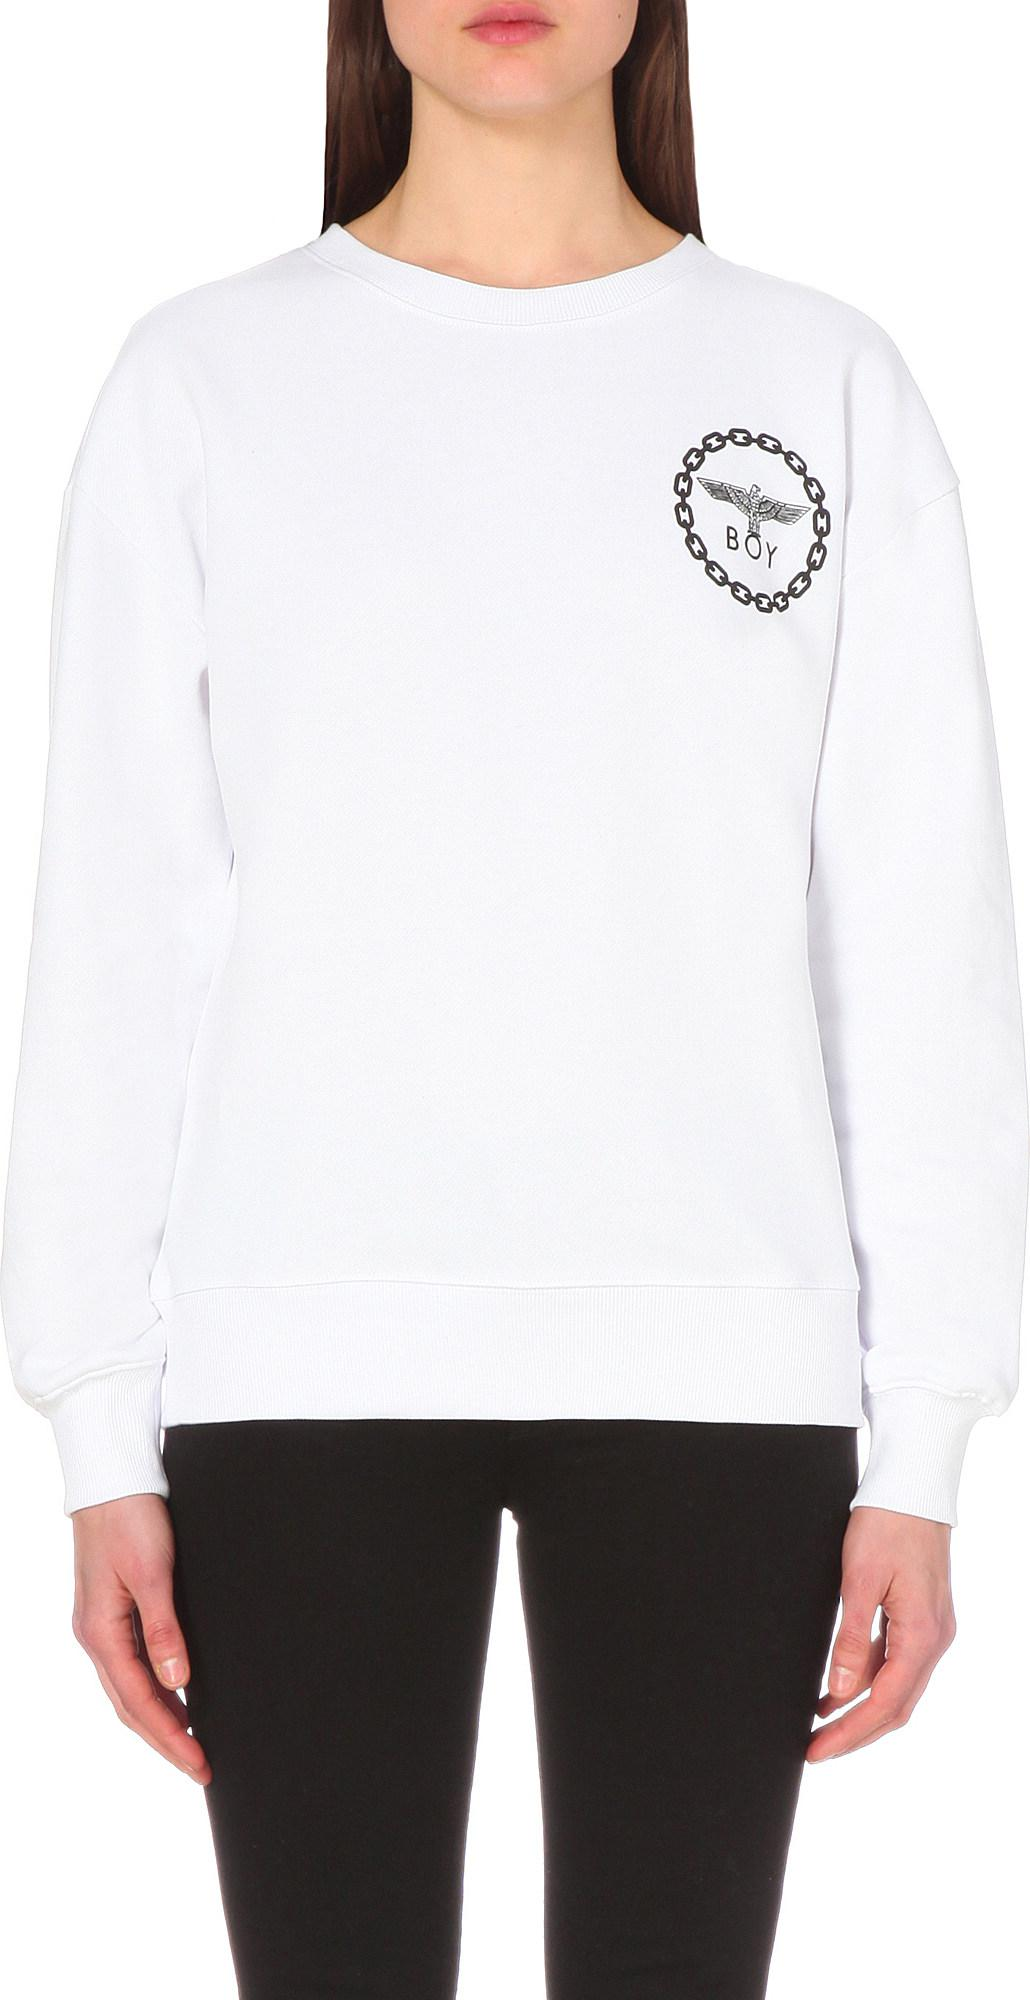 670d11bf414f BOY London. Women s White Eagle-print Cotton-jersey Sweatshirt. £75 From  Selfridges